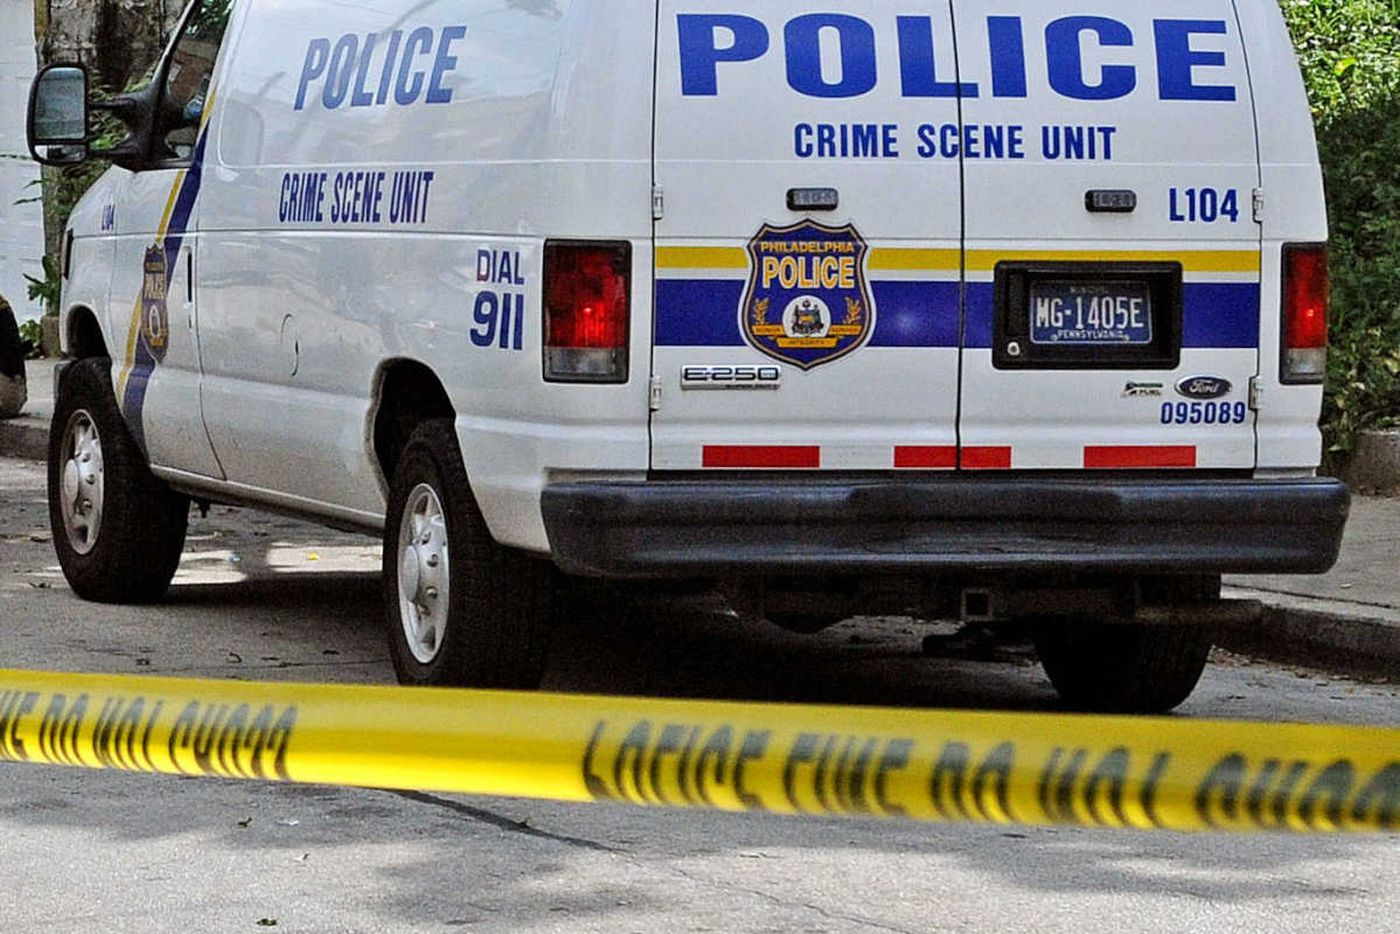 Two men, ages 21 and 30, killed in separate shootings in Philly